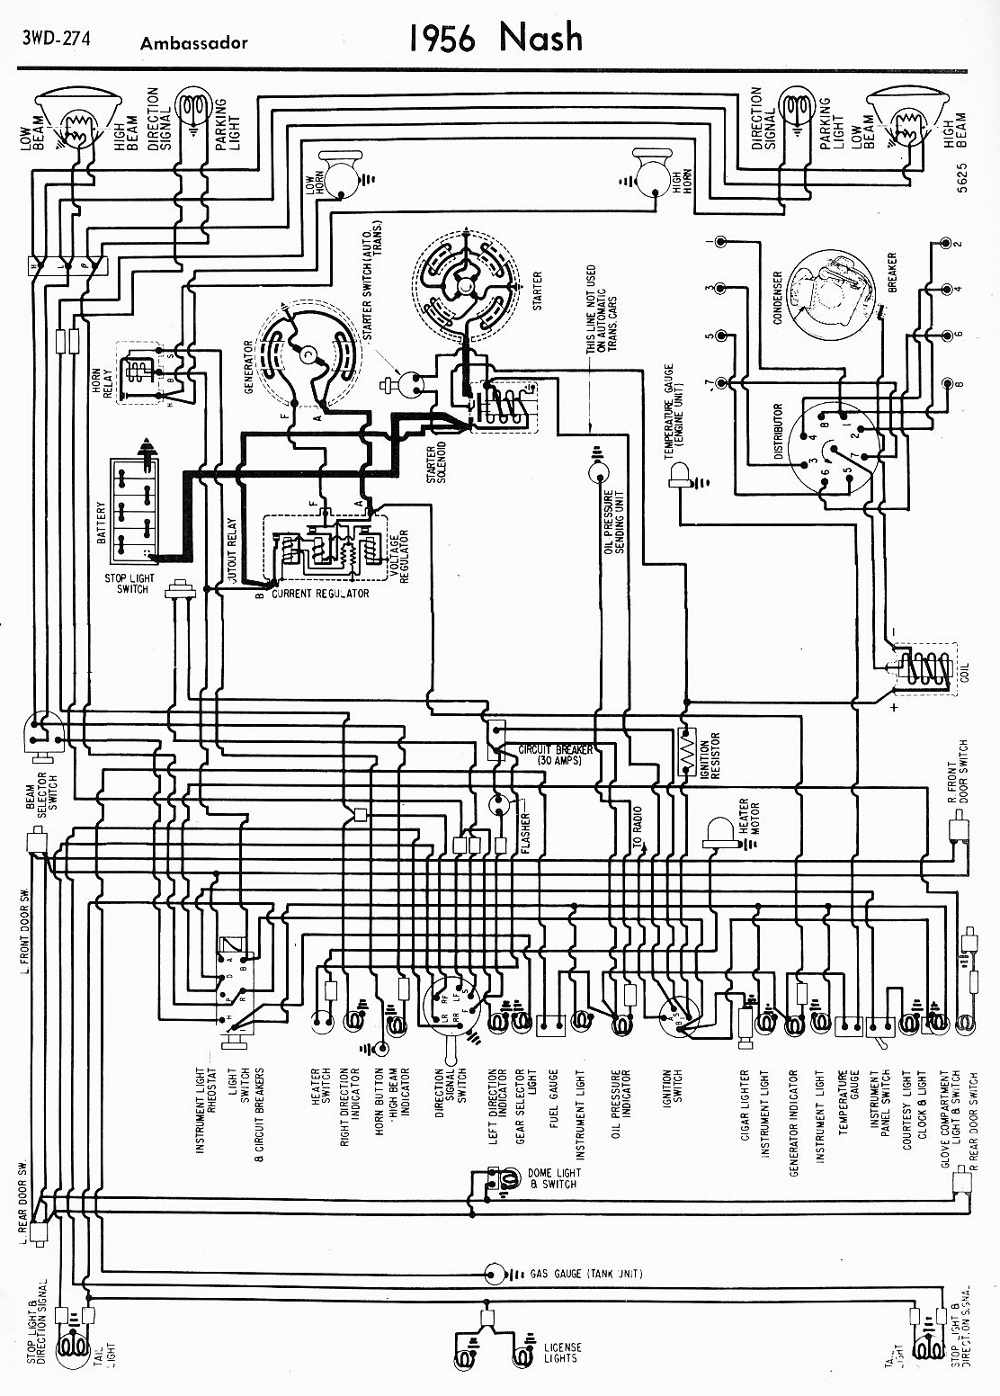 1956 Ford Thunderbird Ignition Schematic Electrical Wiring Diagrams Diagram For 57 Appealing Switch 71